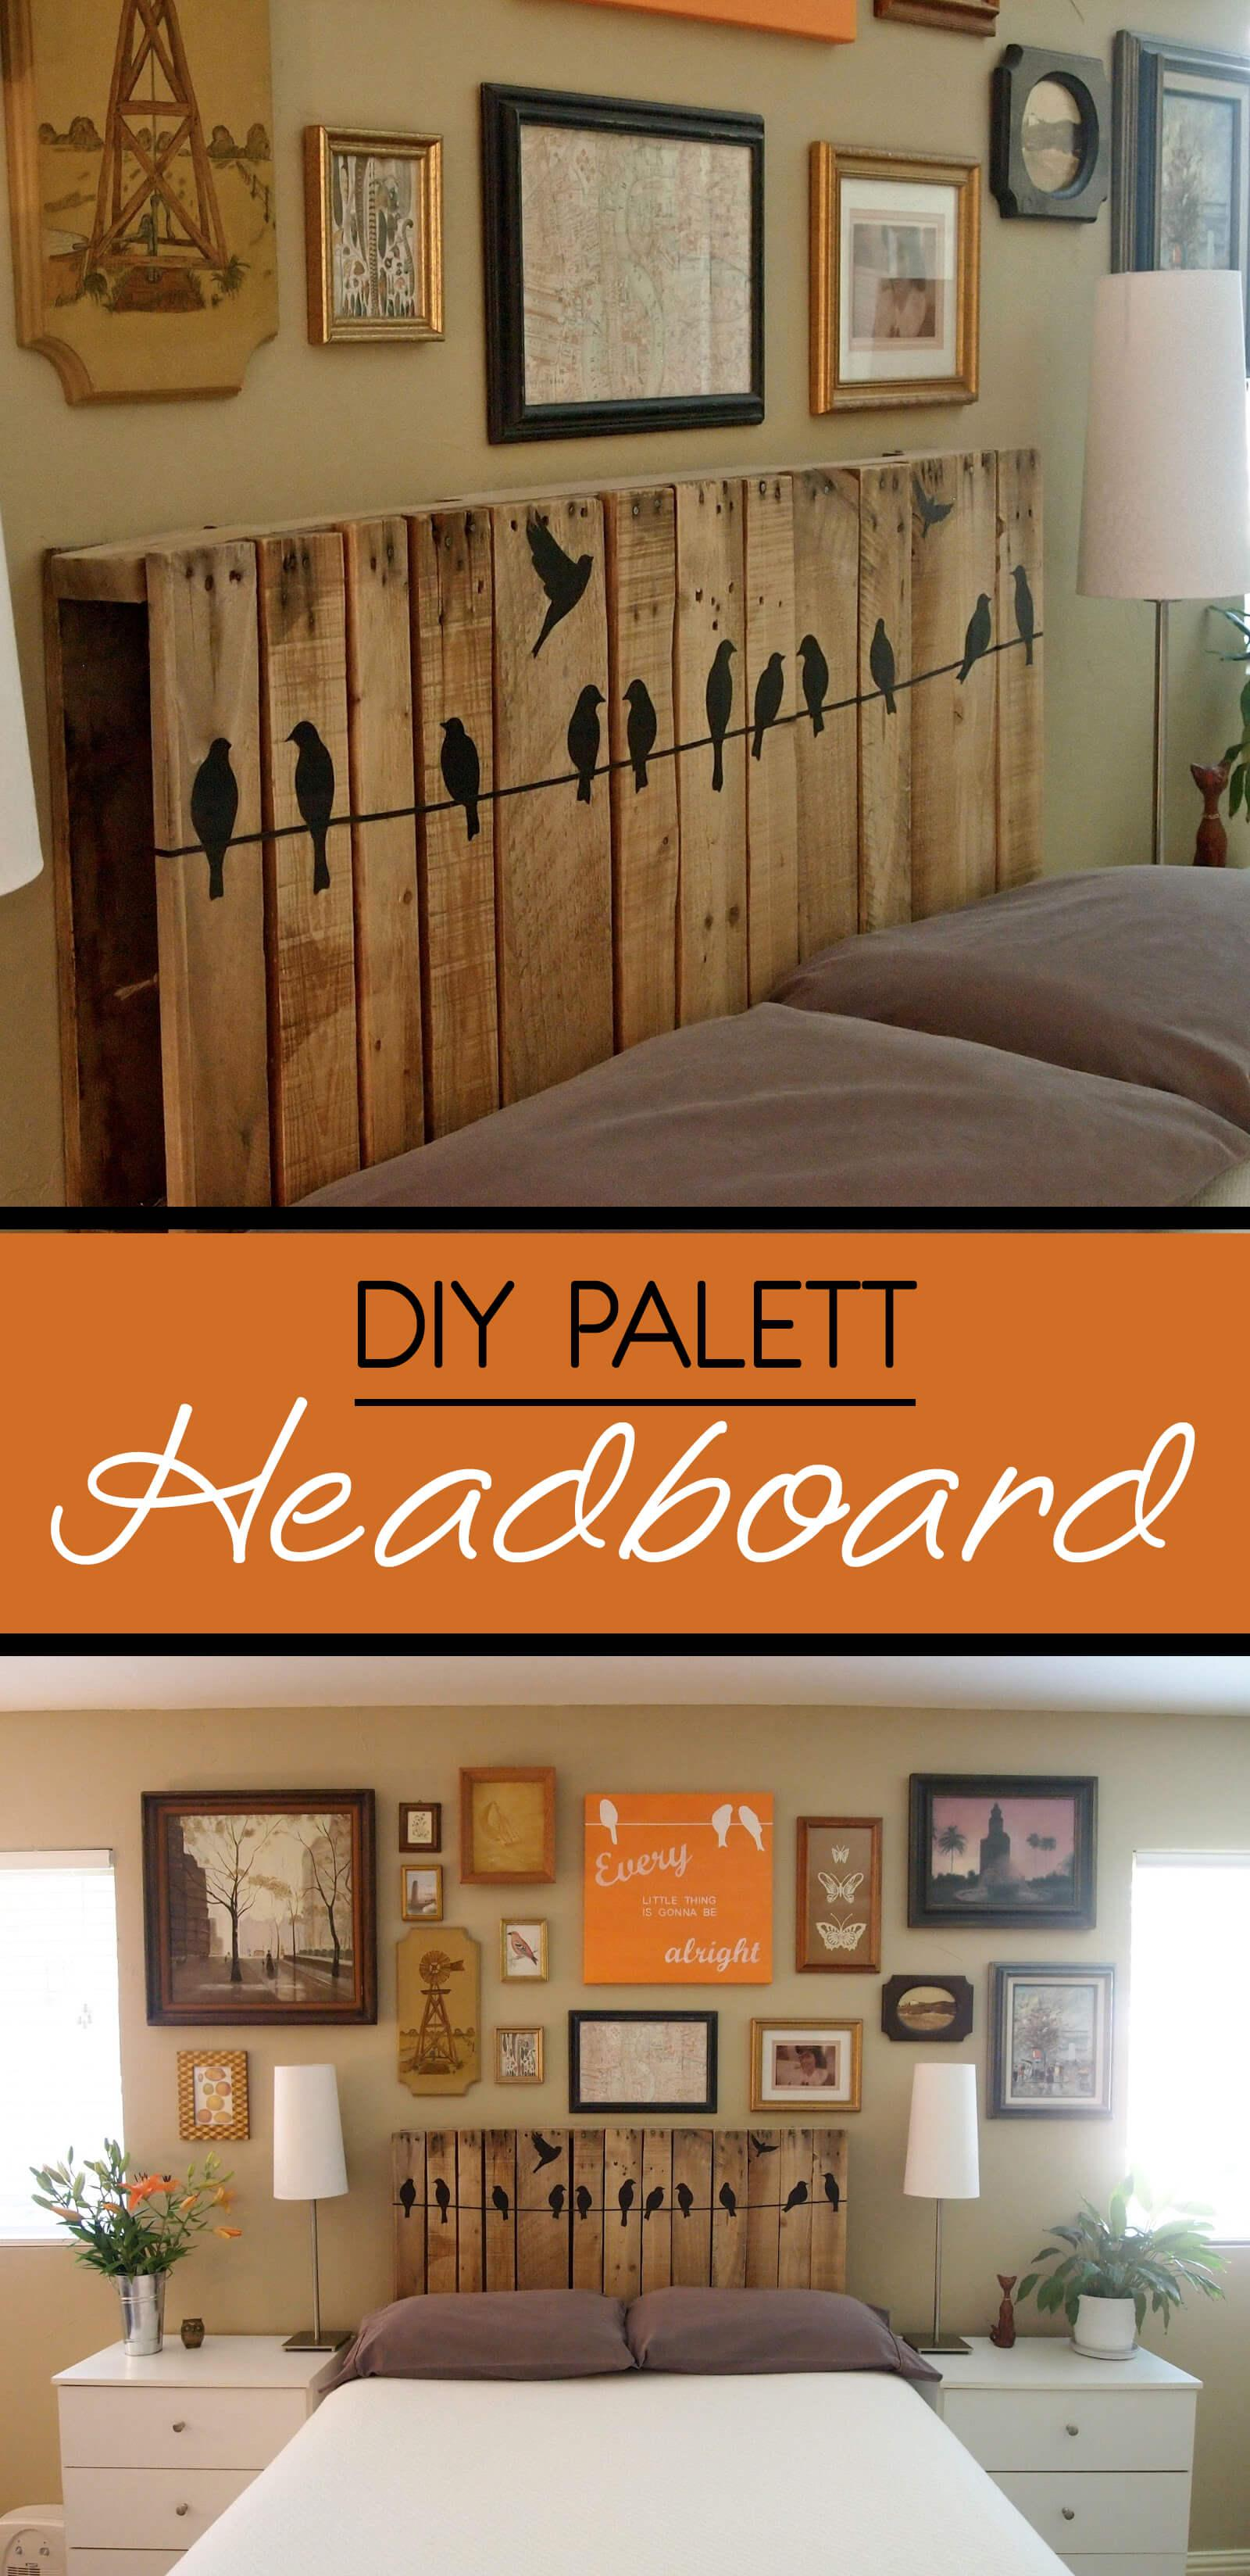 Pallet Headboards Always Soar